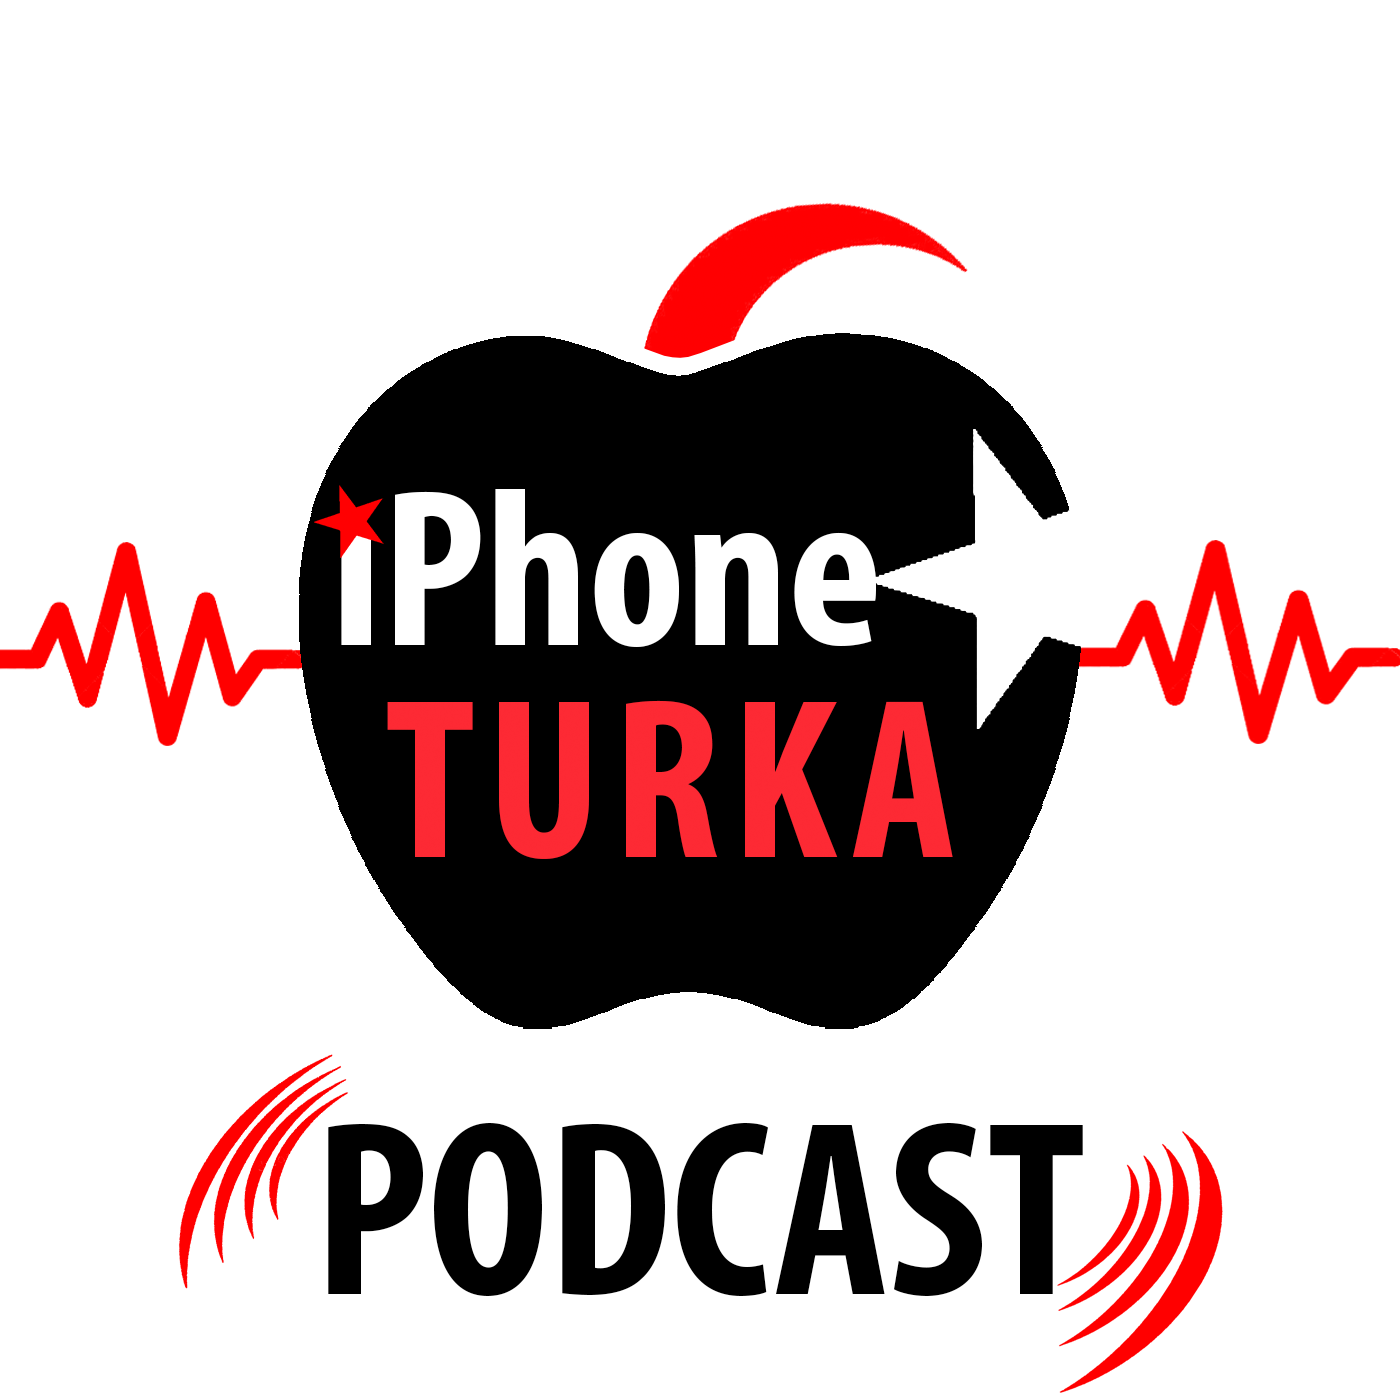 Podcast Episode #Special Edition: iPhone 6 ve 6 Plus İnceleme Sohbeti